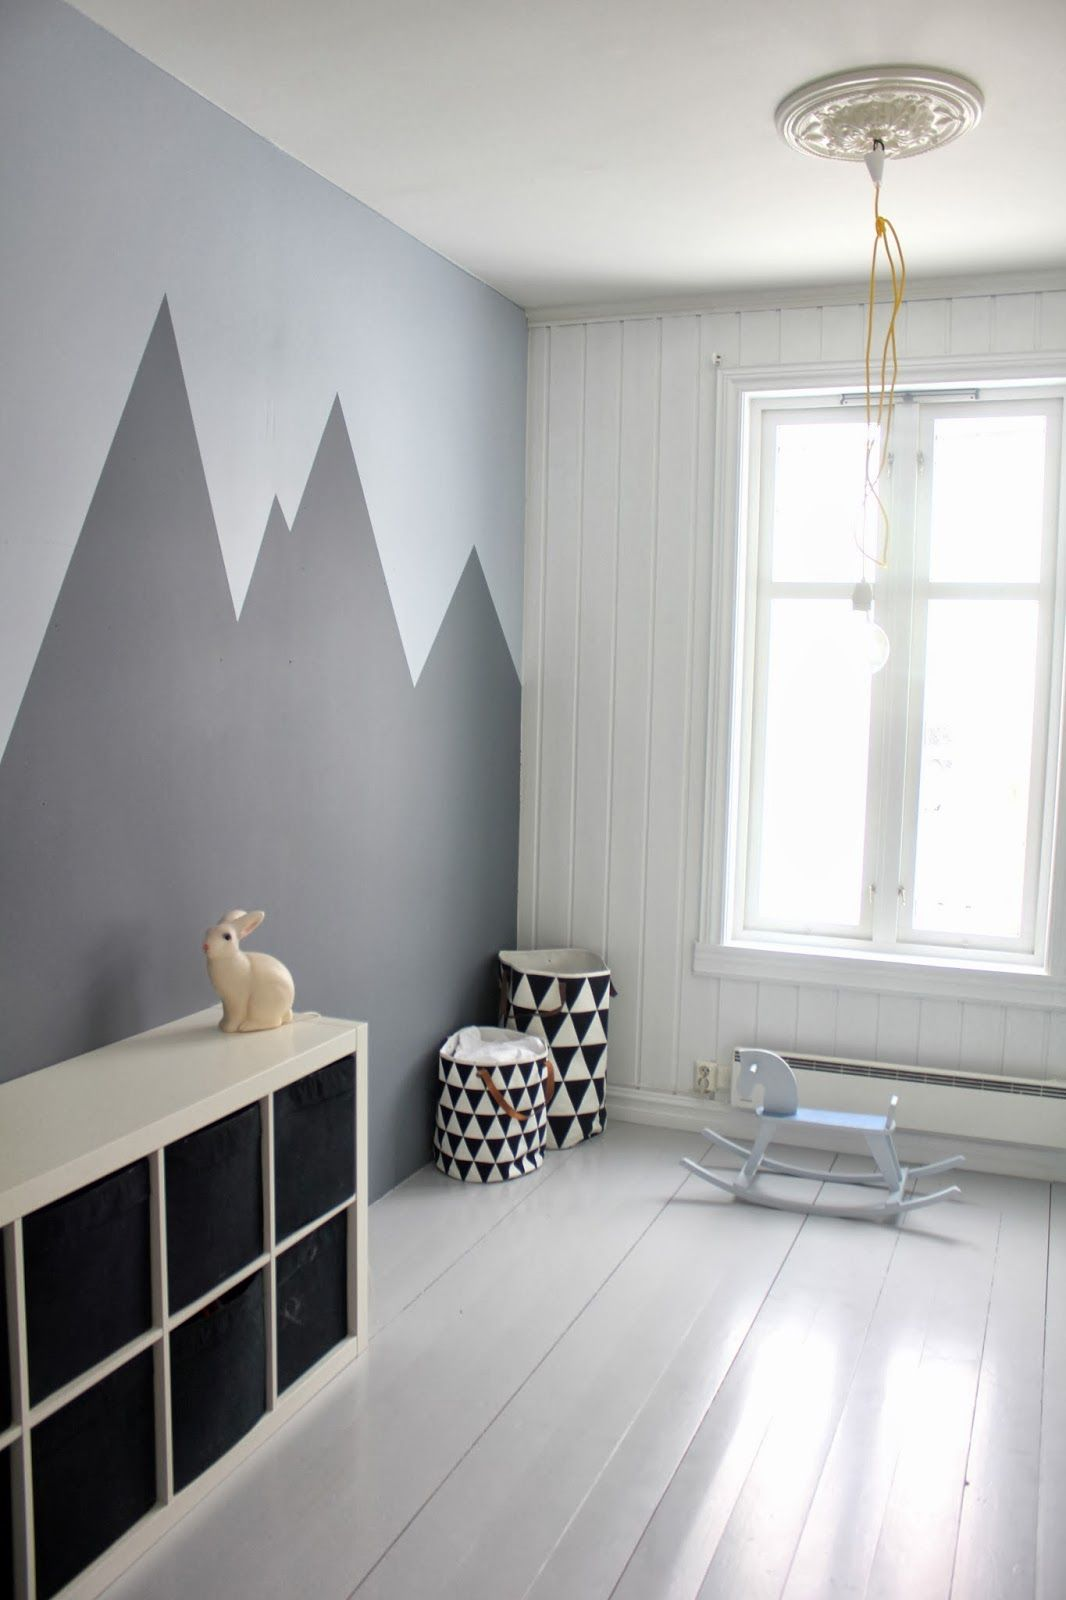 Pintura De Pizarra Para Pared Gray Mountains Deco Baby S Room Kids Room Playroom Toddler Rooms